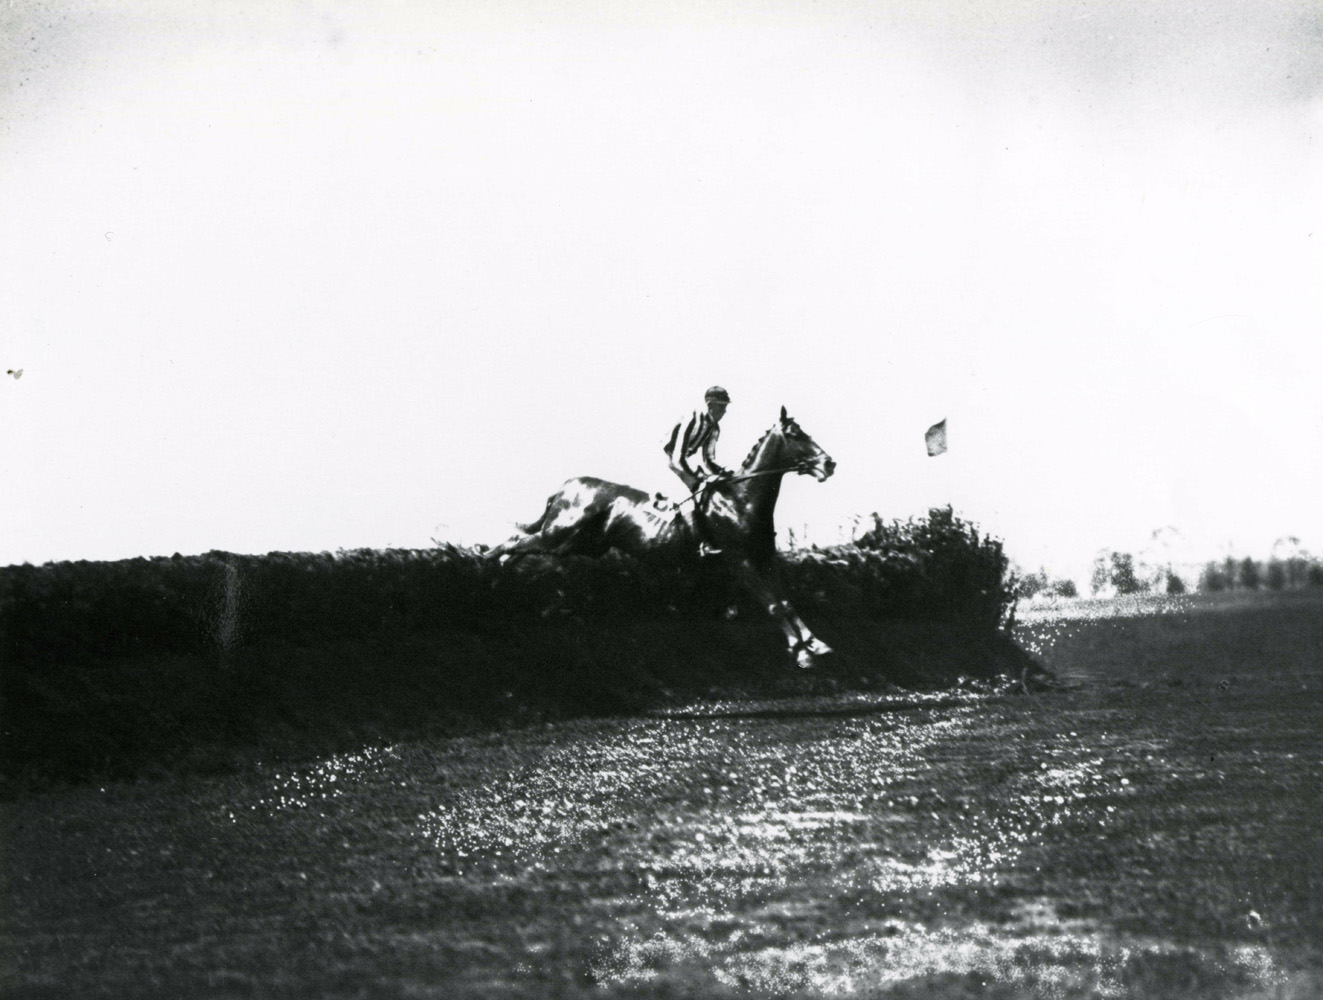 Fairmount (J. Lewis up) taking a jump (Keeneland Library Cook Collection/Museum Collection)